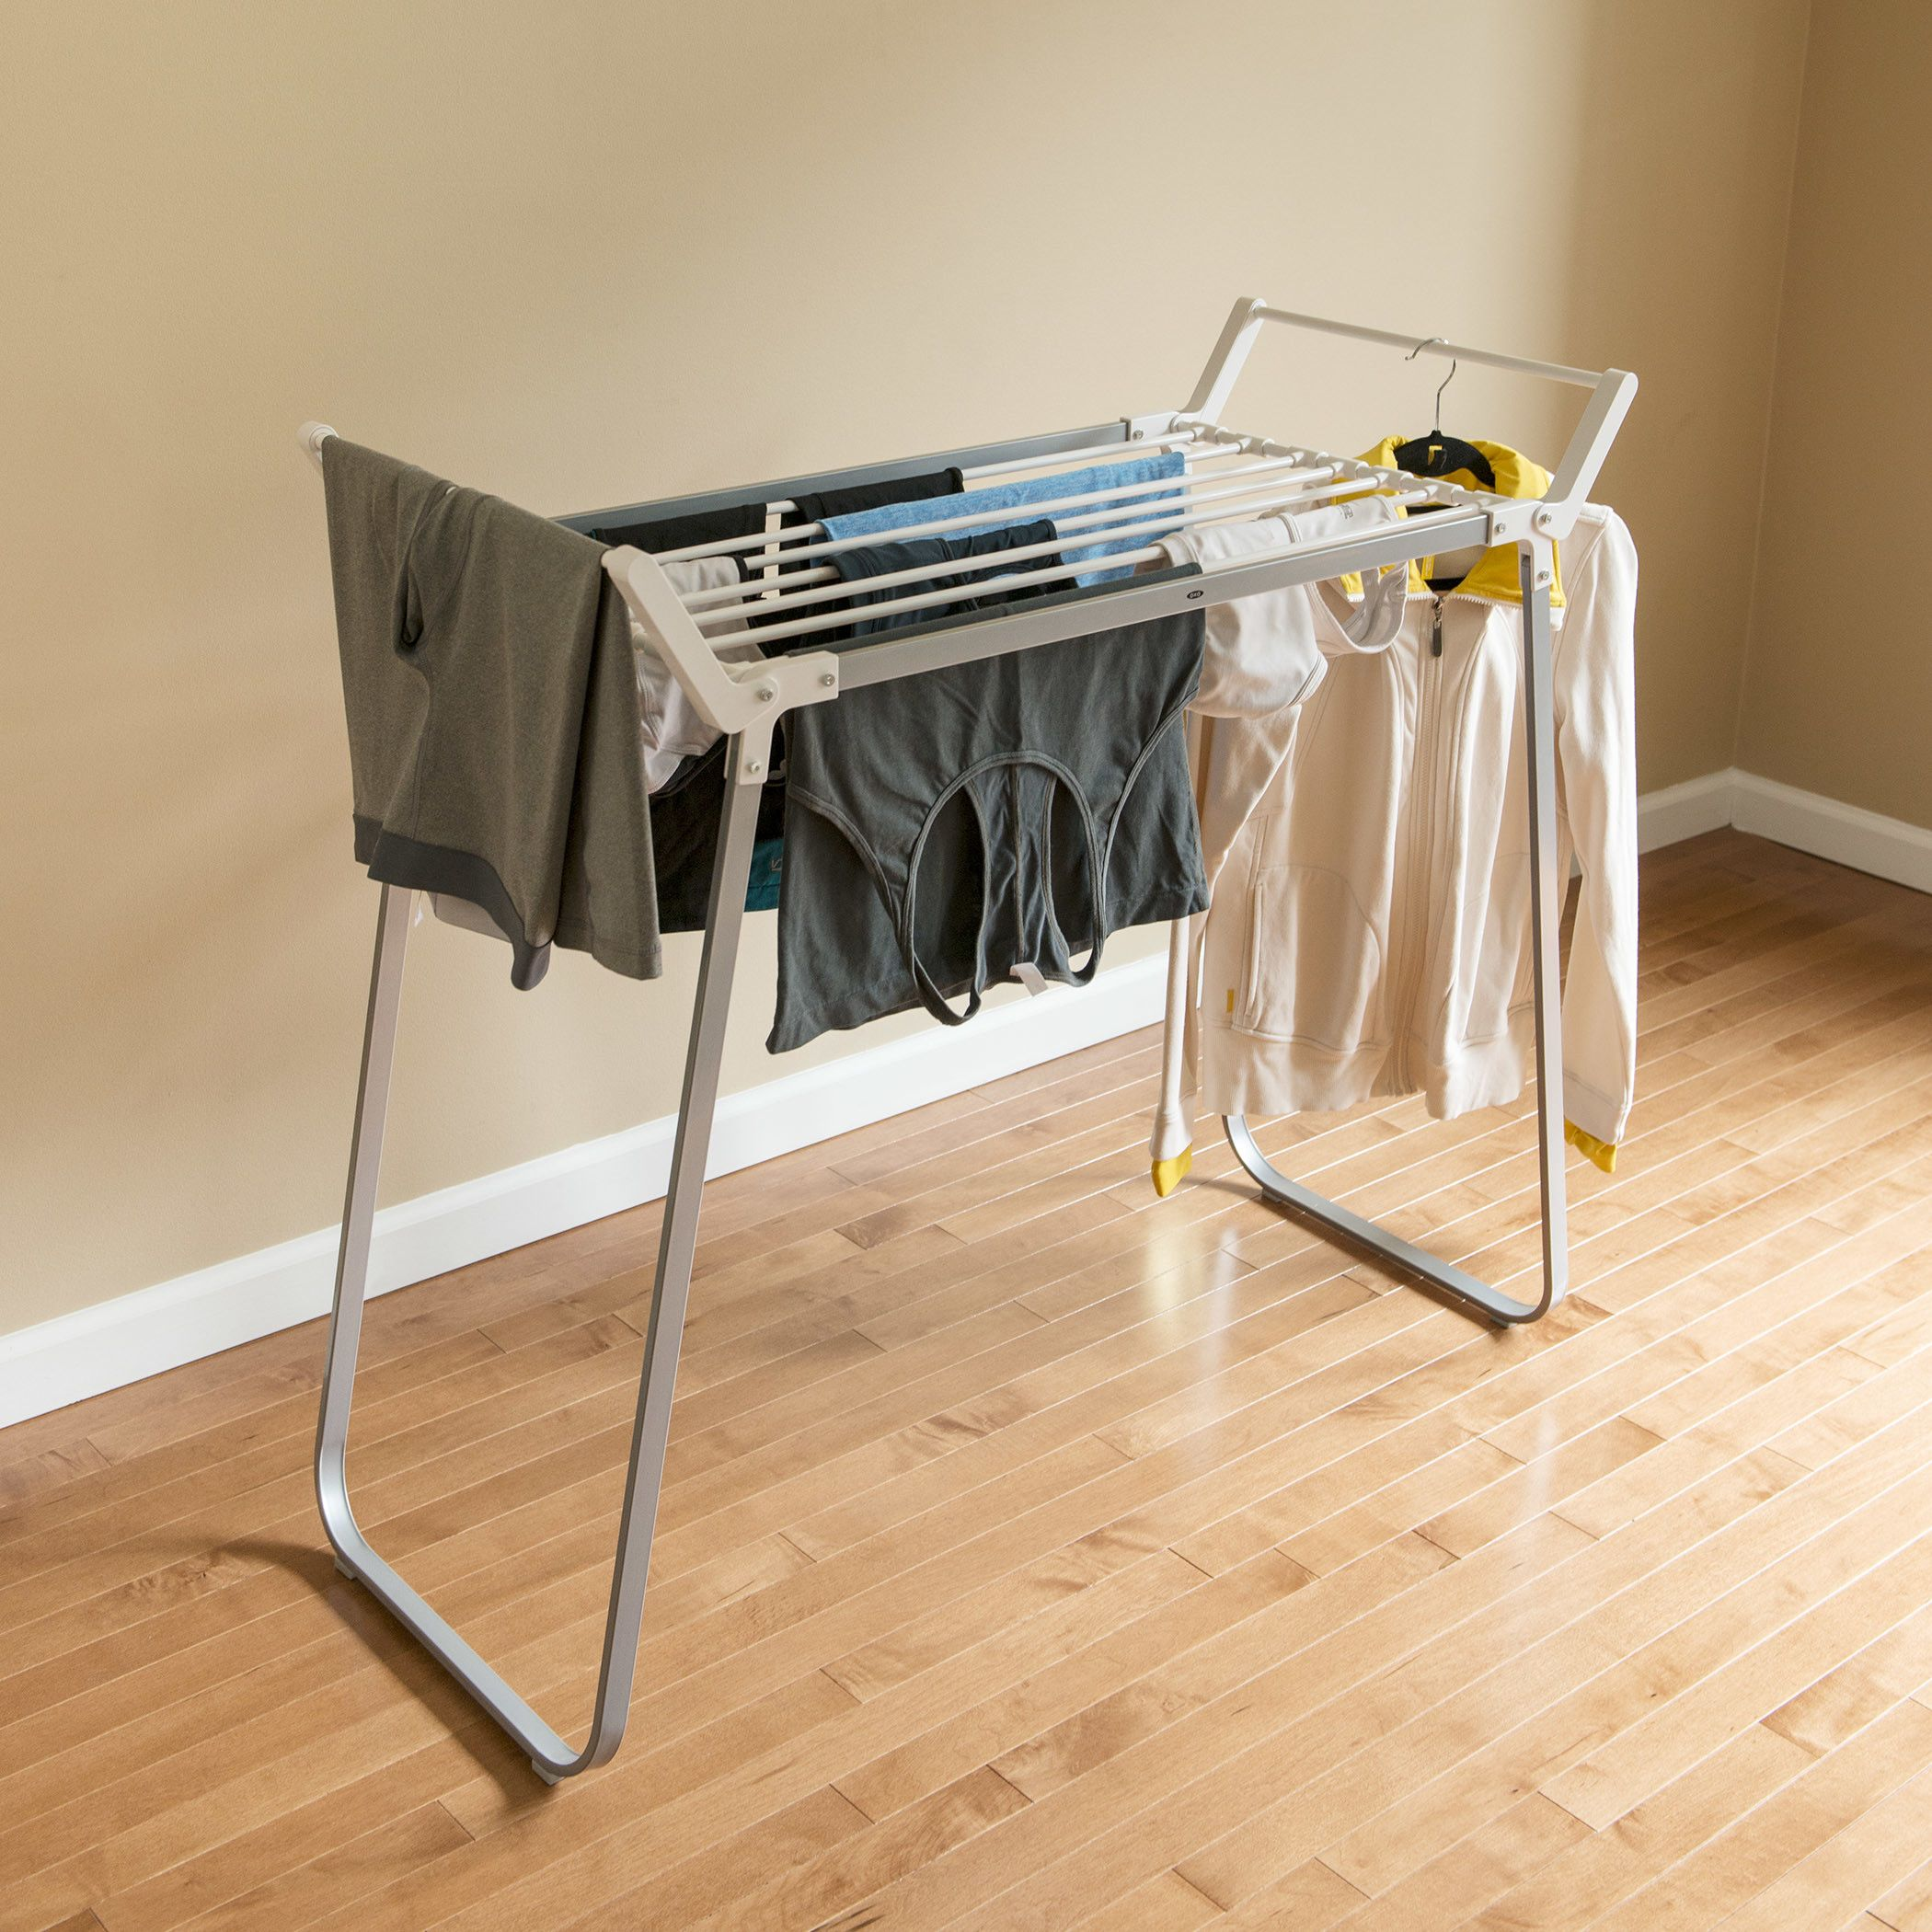 OXO Good Grips Laundry Drying Center | Garment Washing Areas